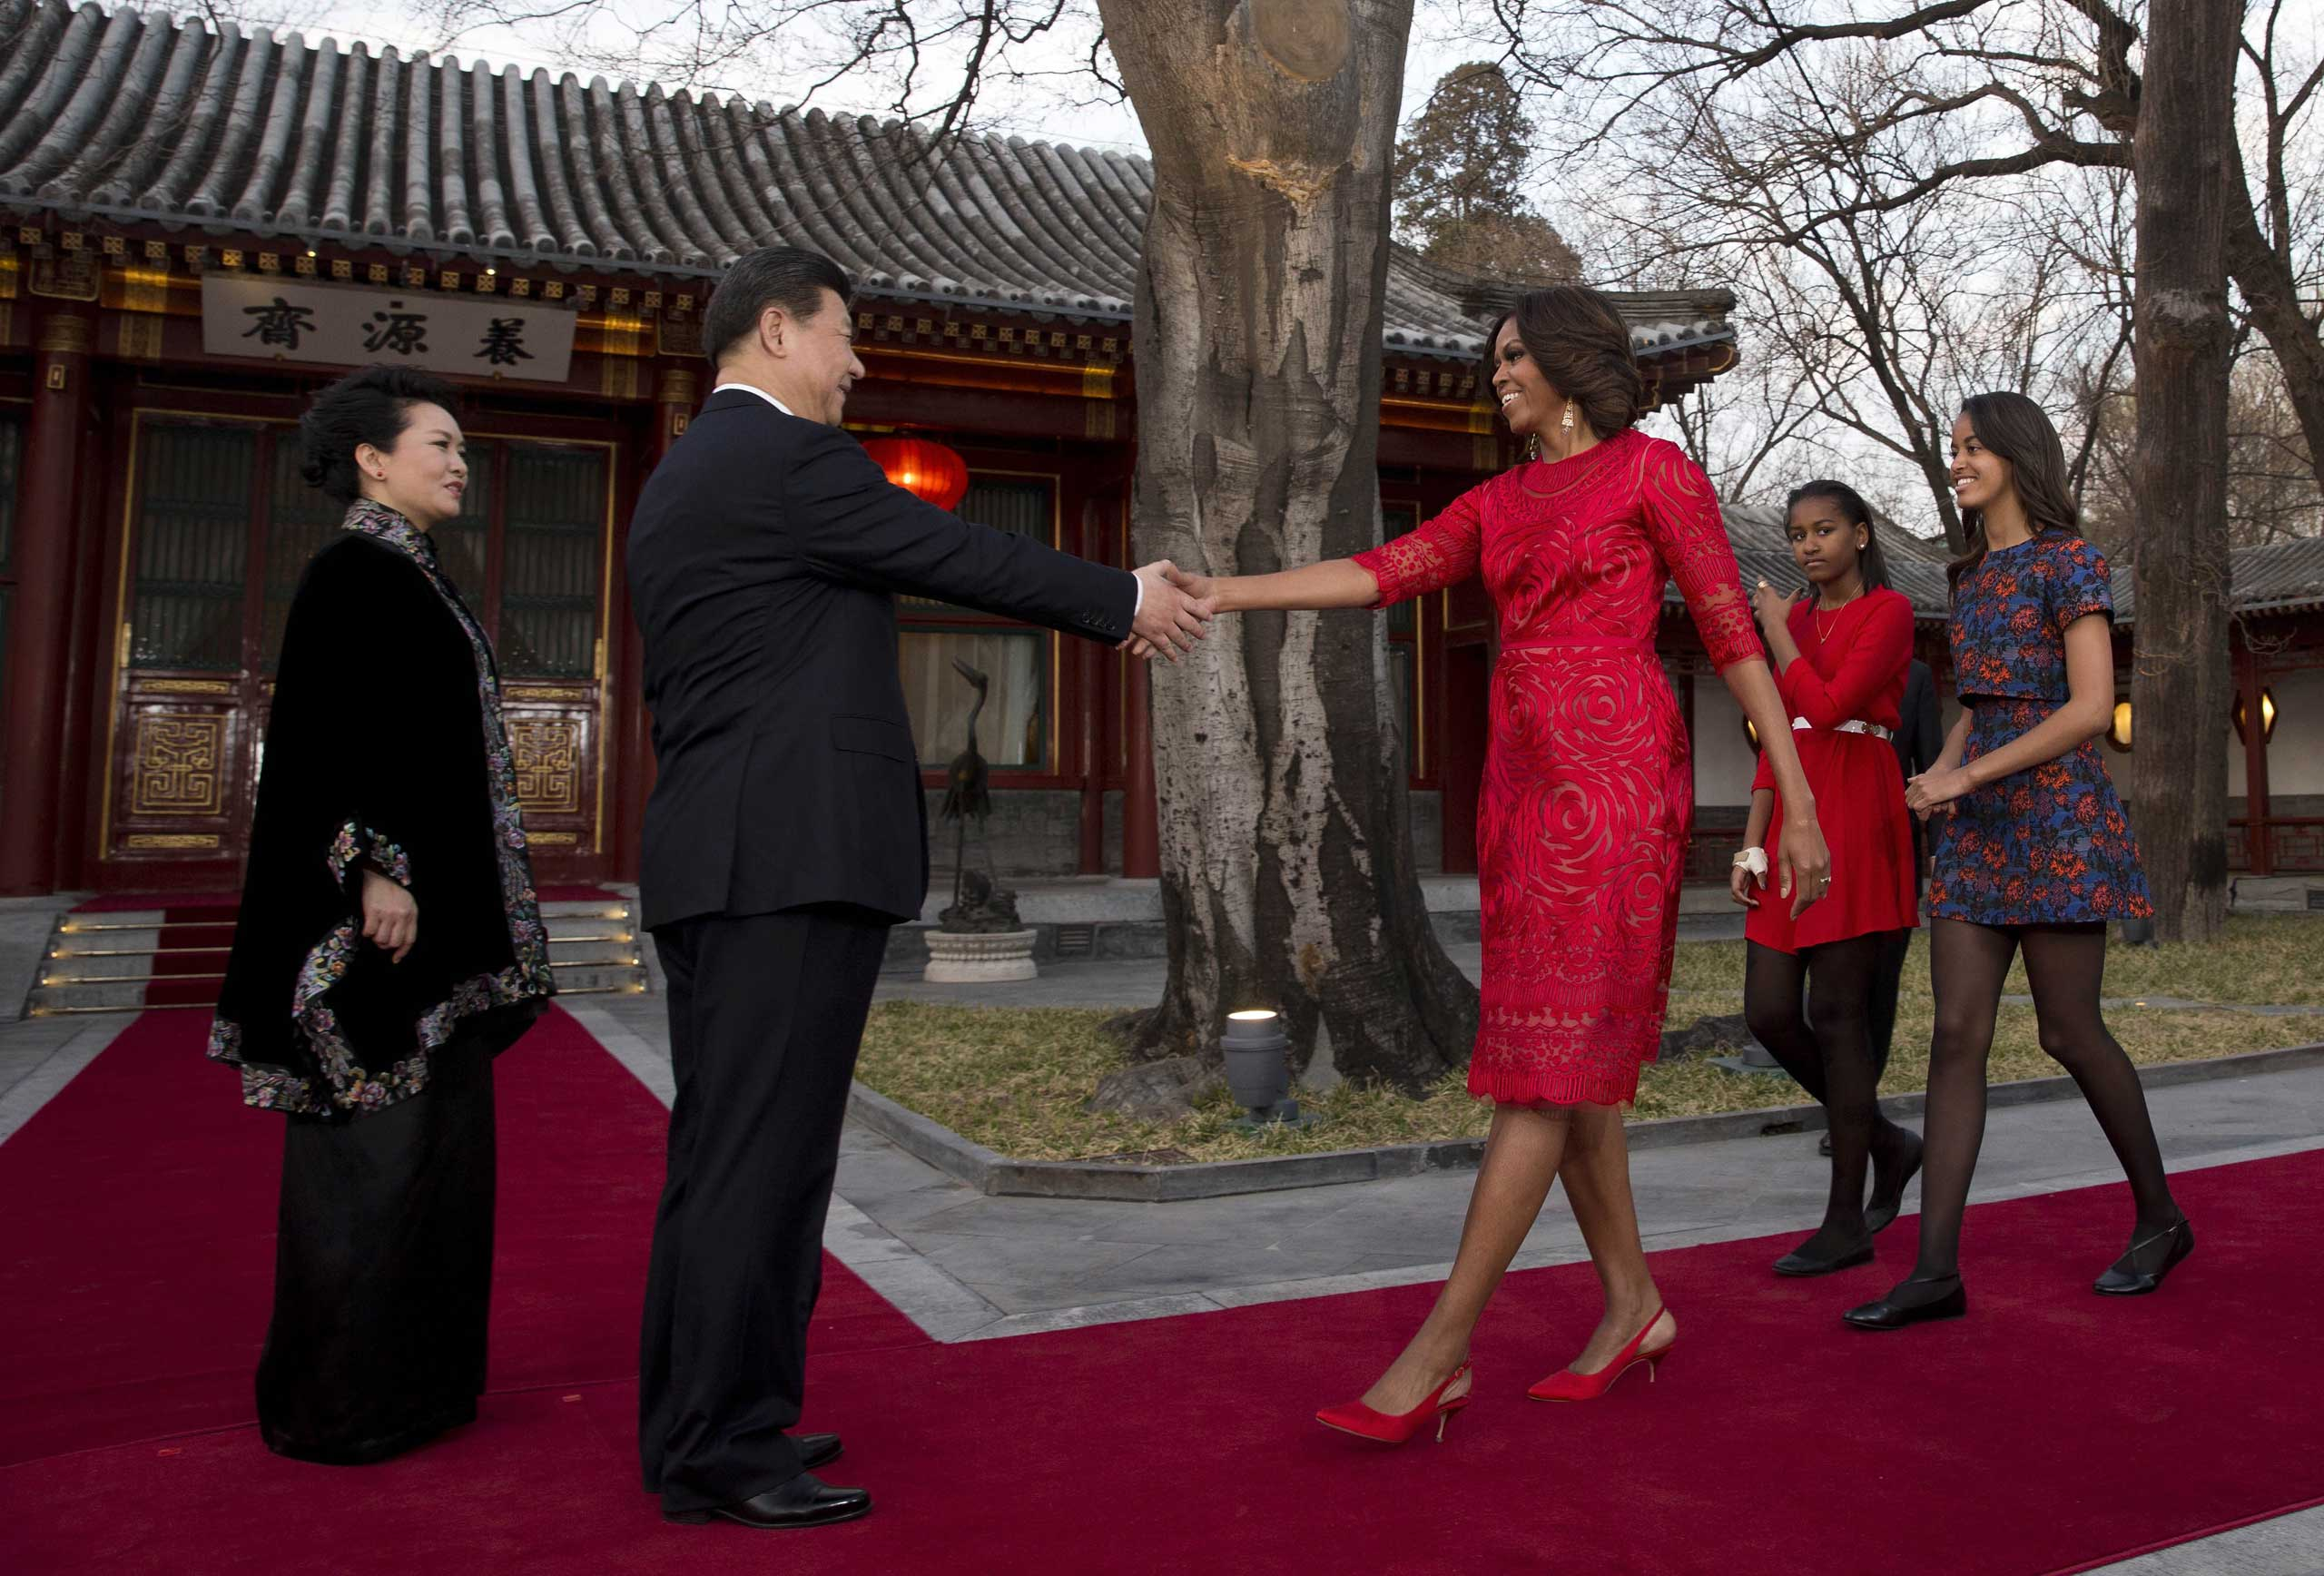 During a visit to Beijing in March to meet with Chinese President Xi Jinping, Obama wore a custom dress by Naeem Khan which updated the traditional Chinese red dress — and her daughters didn't look too bad either.